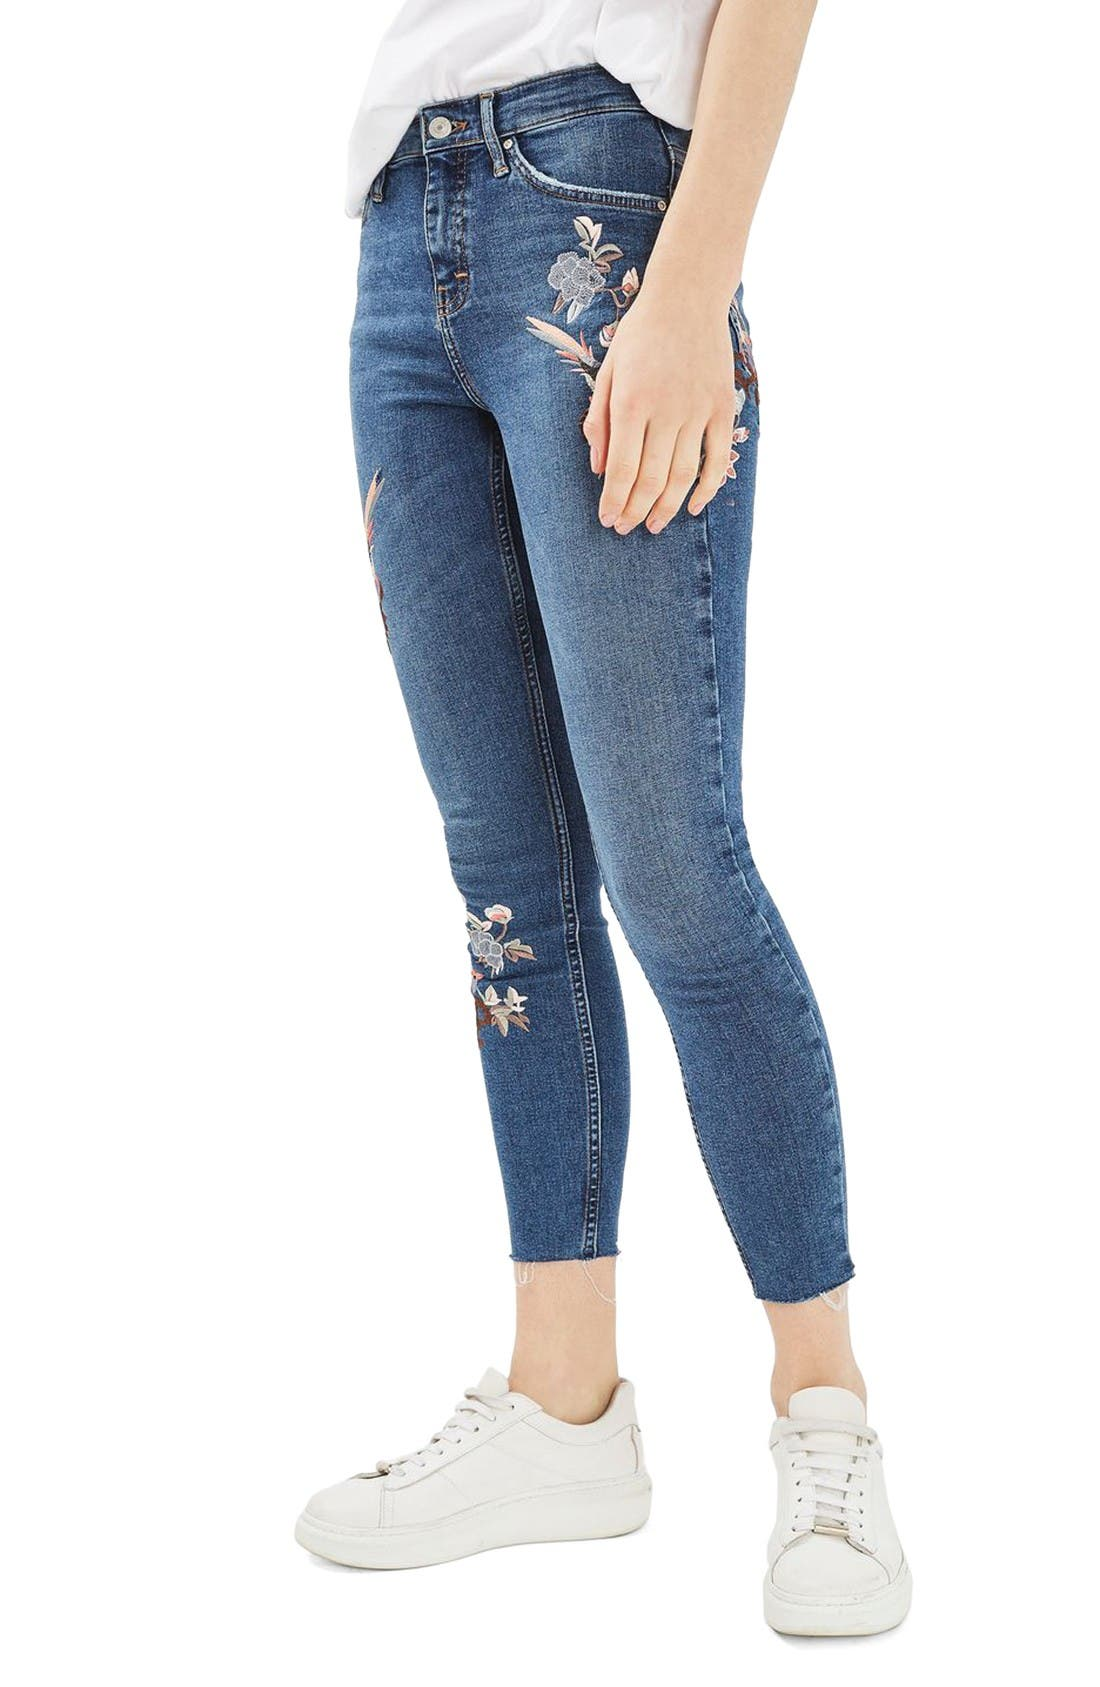 Alternate Image 1 Selected - Topshop Moto Jamie Embroidered Skinny Jeans